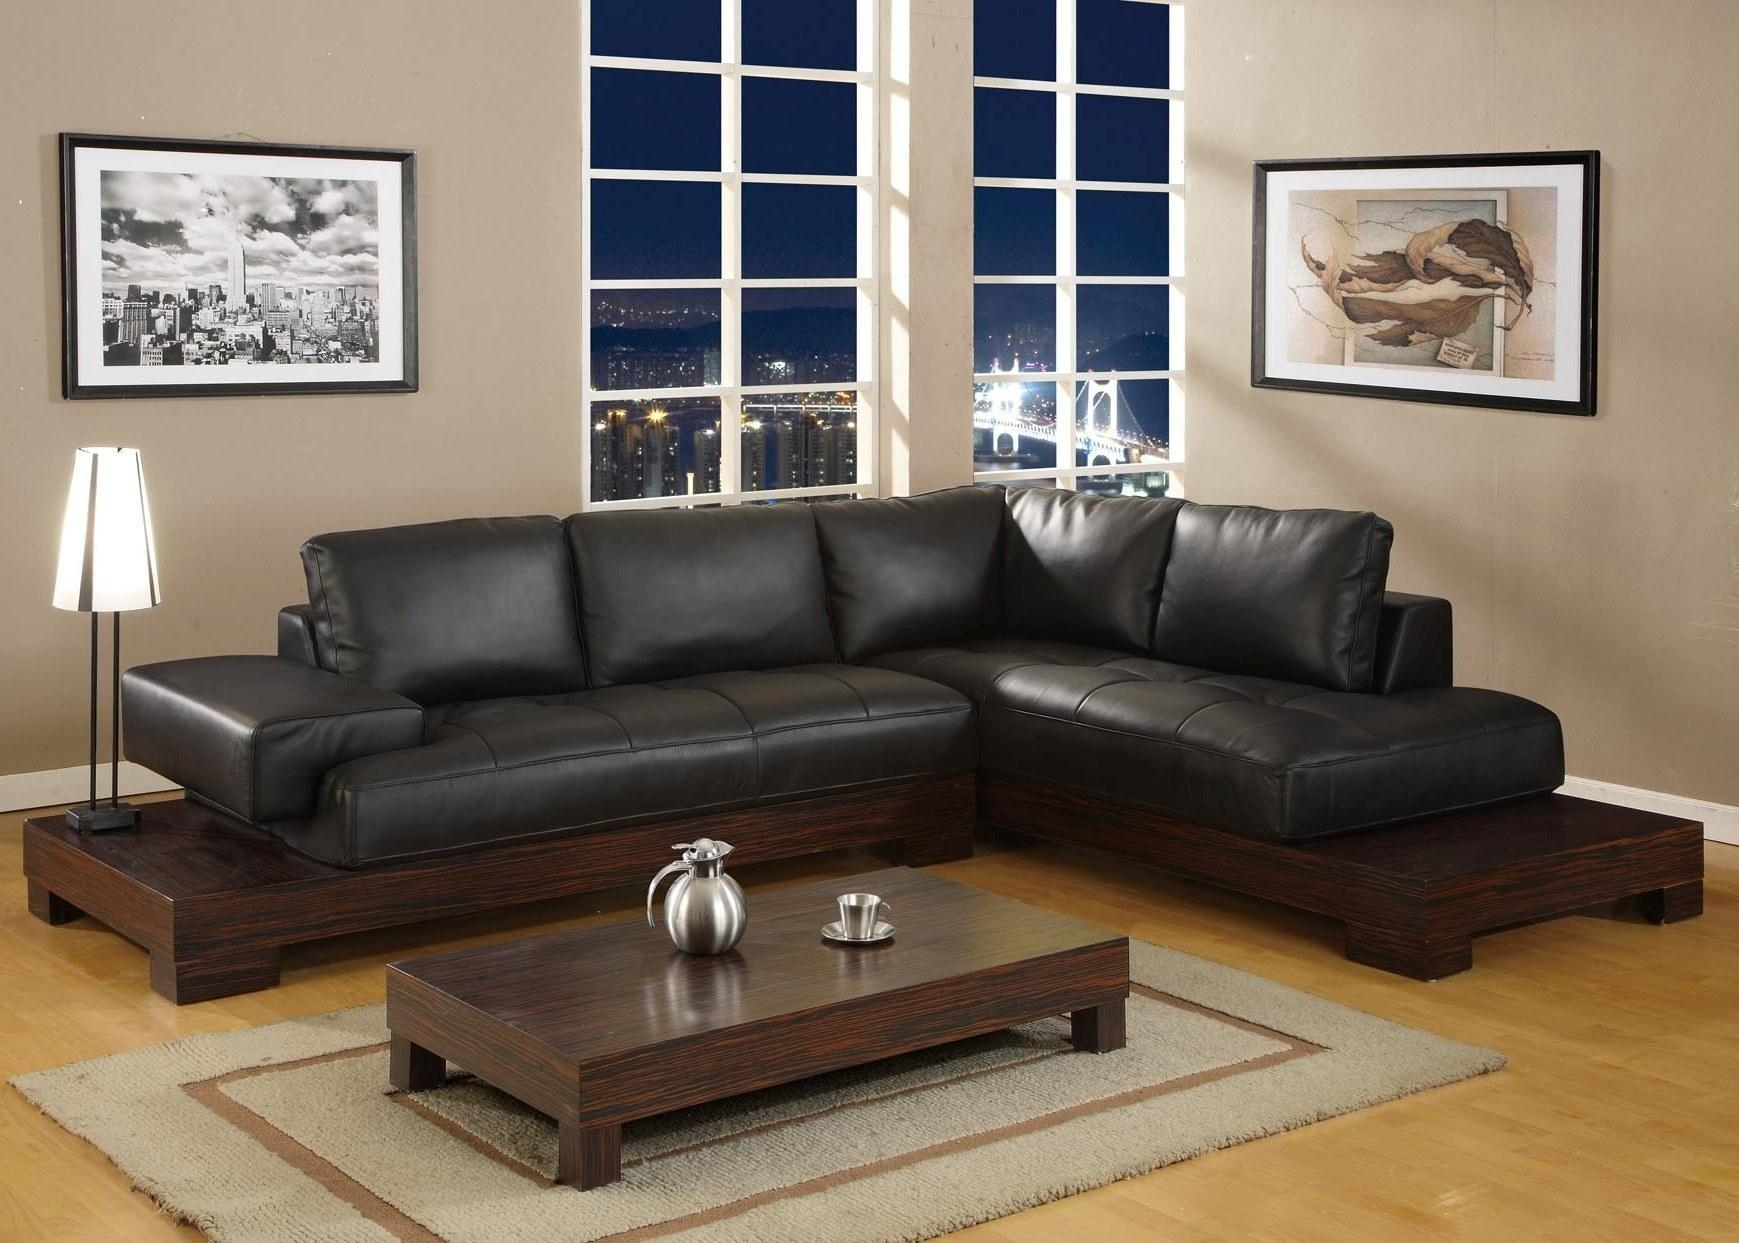 Decorating Your Home Decoration With Amazing Awesome Living Room Pertaining To Black Sofas Decors (Photo 17 of 20)